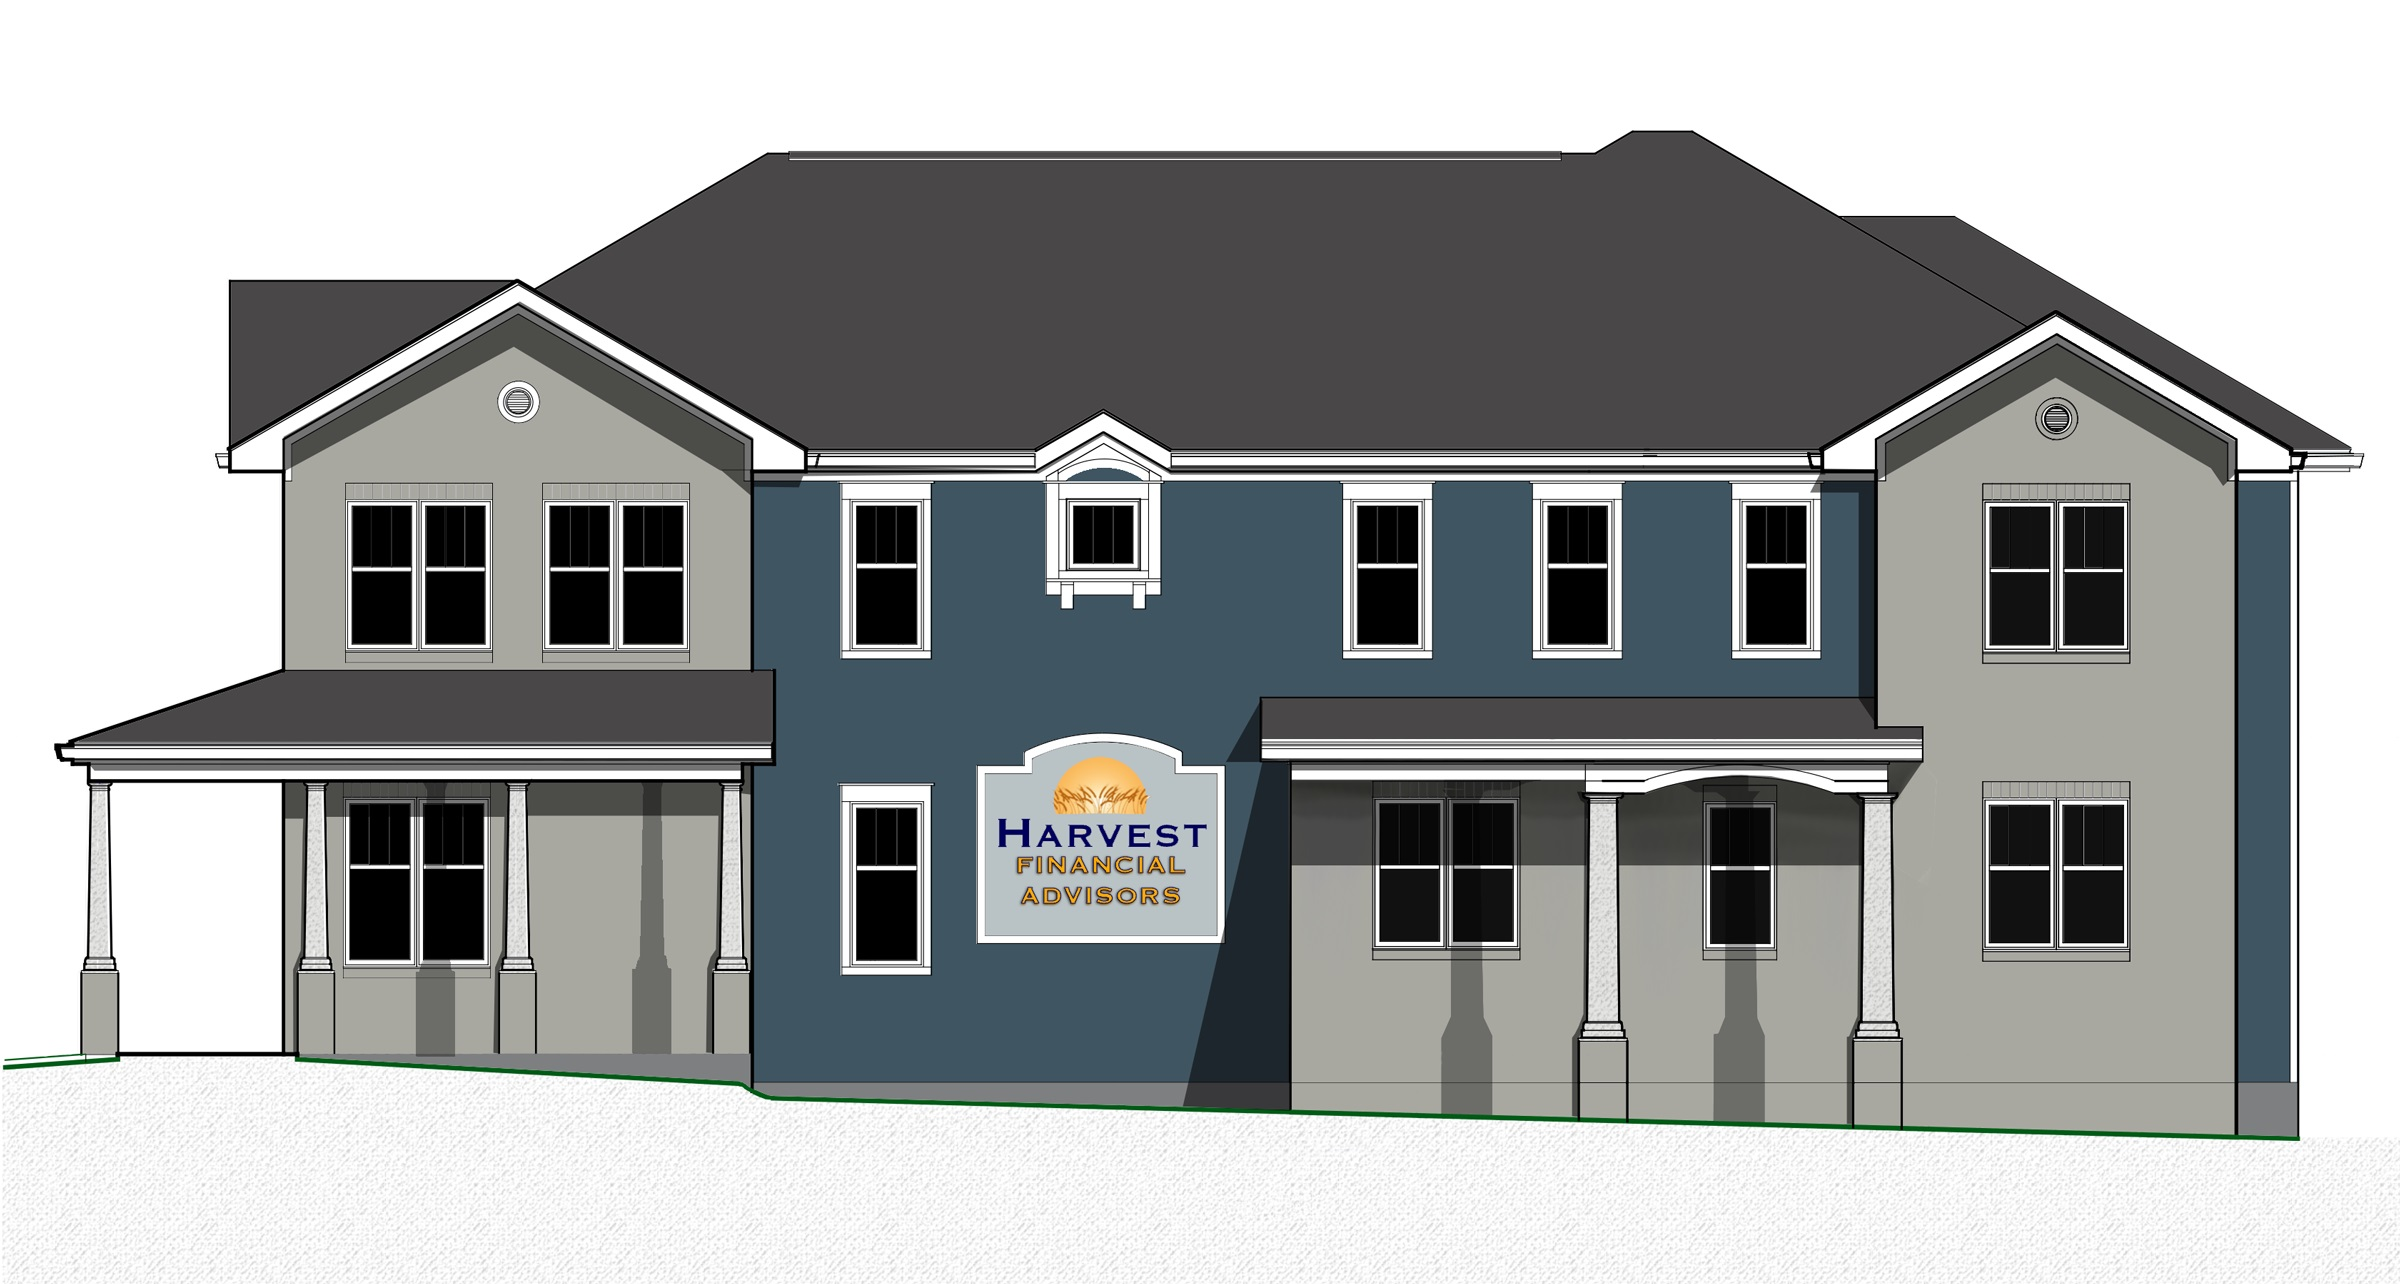 Harvest Financial